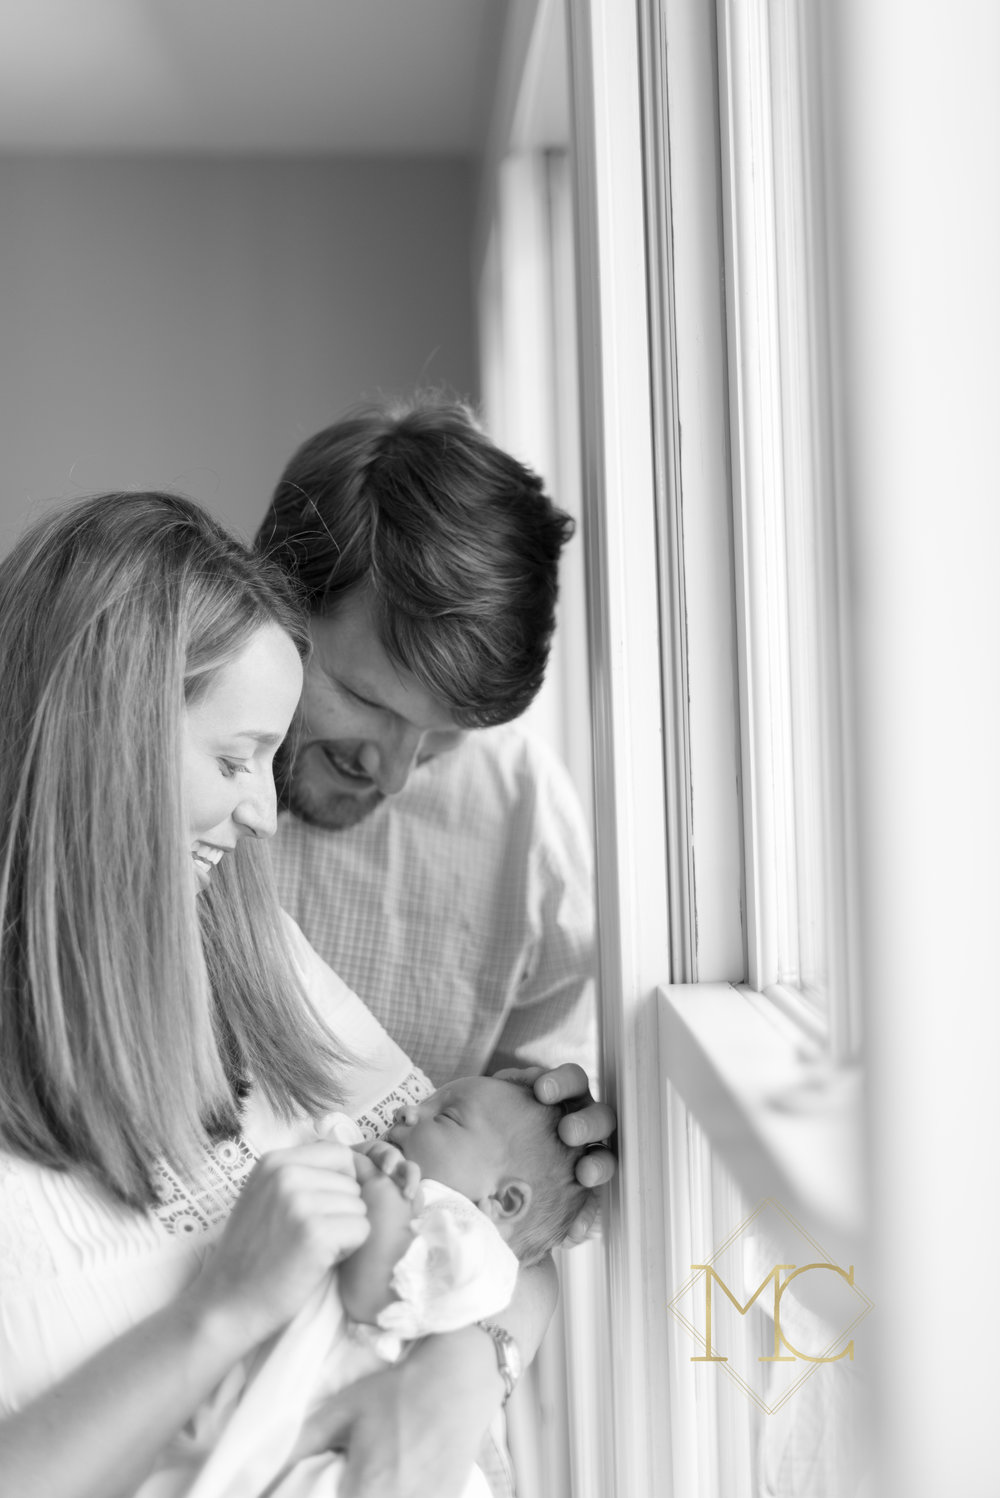 image from nashville newborn lifestyle photo session with mom, dad and baby